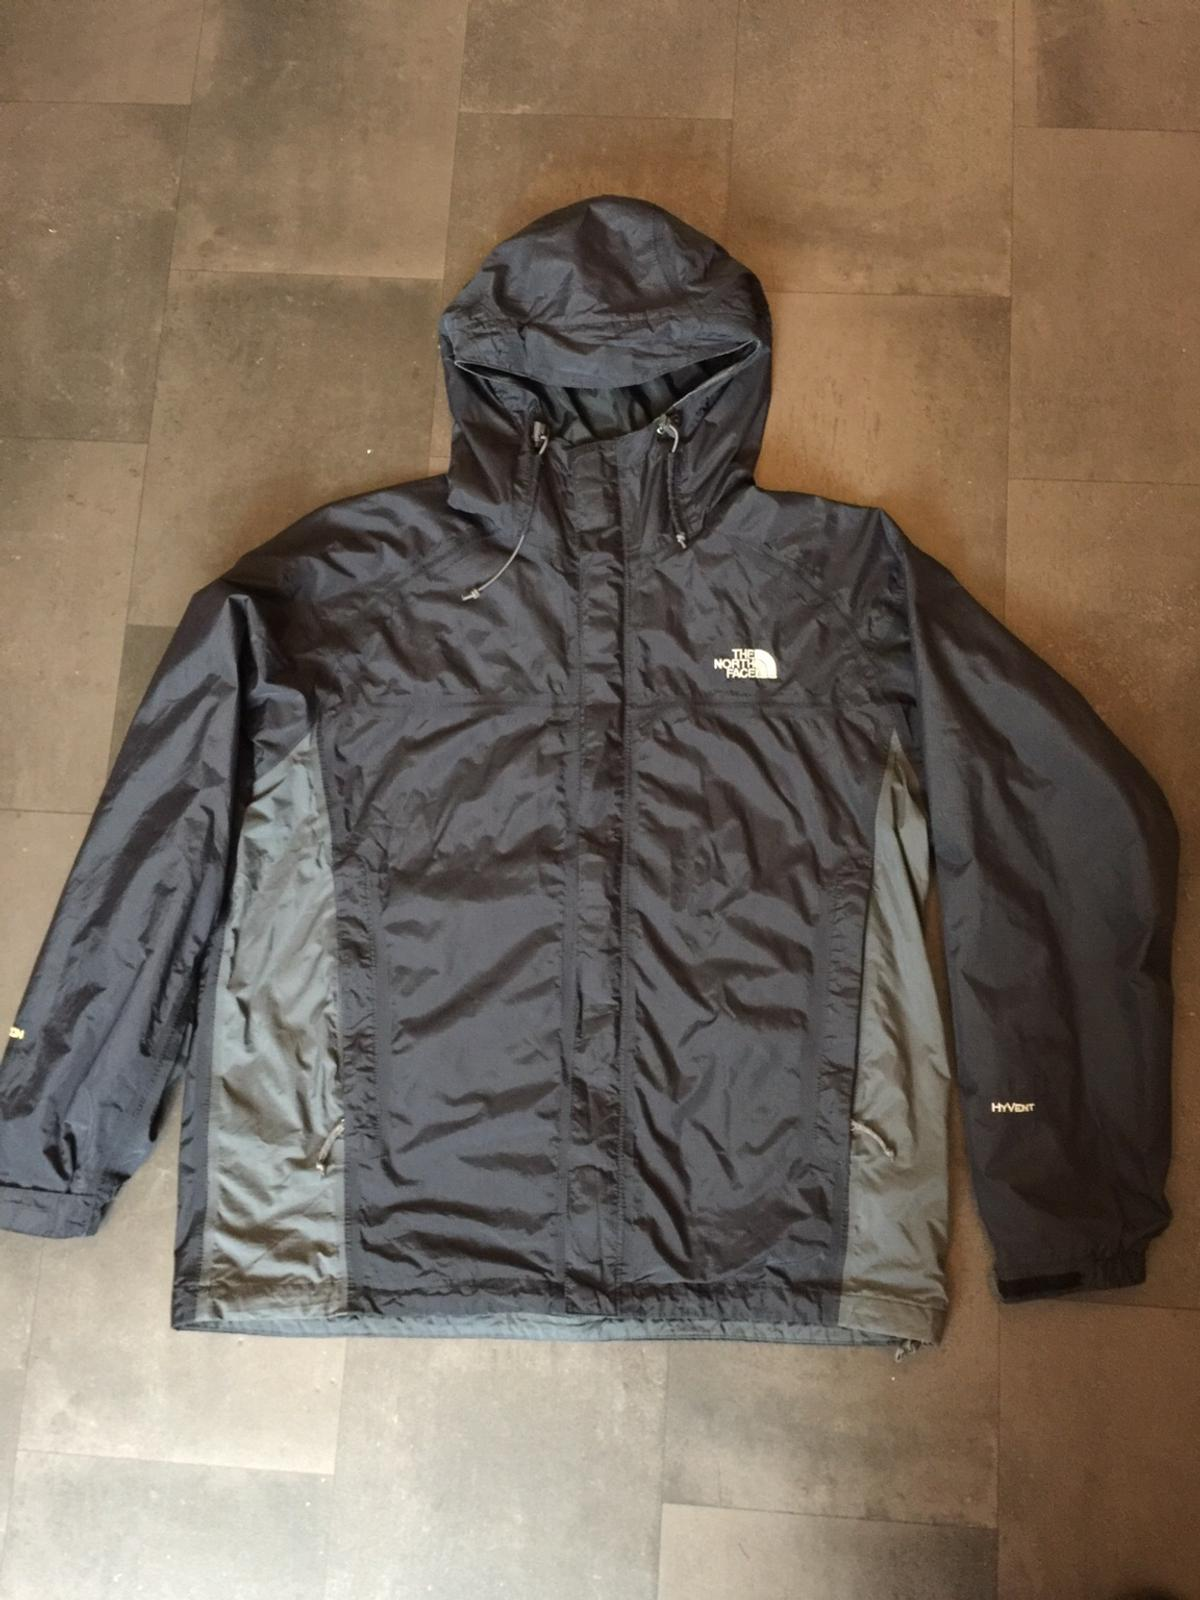 THE NORTH FACE. HYVENT. LIMITED EDITION in M16 Manchester